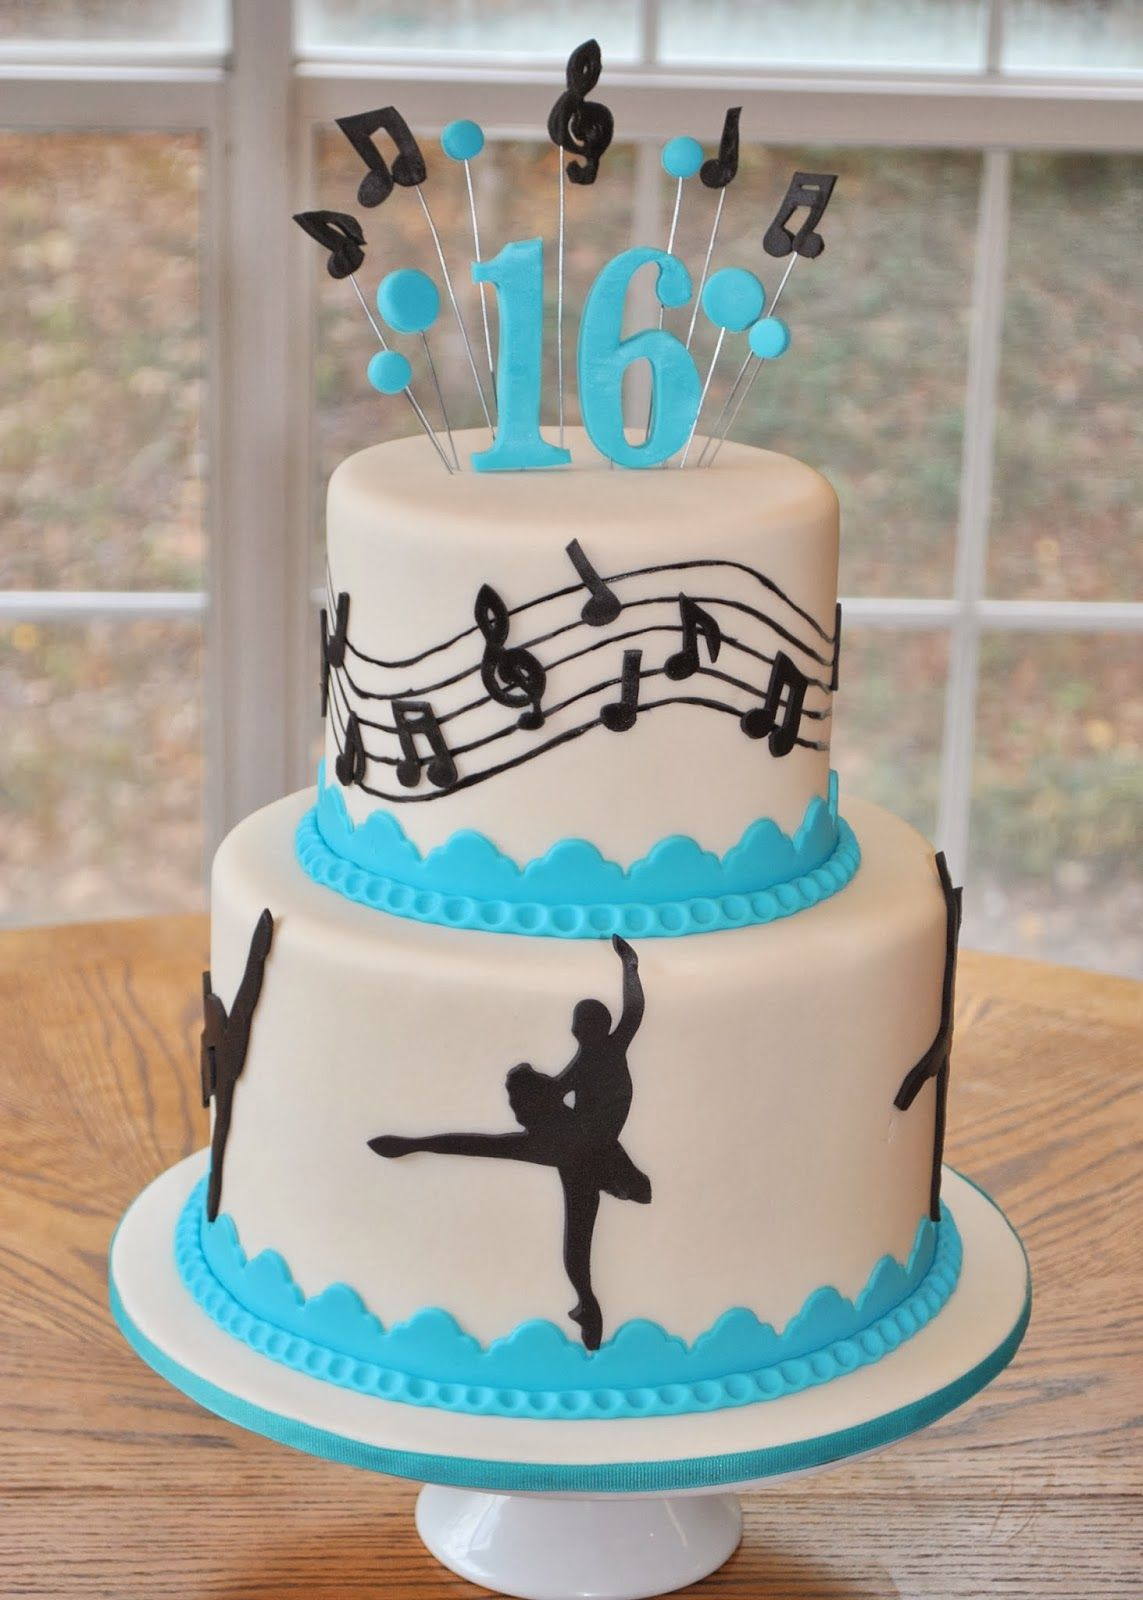 Ballroom Dancer Cake Decorations